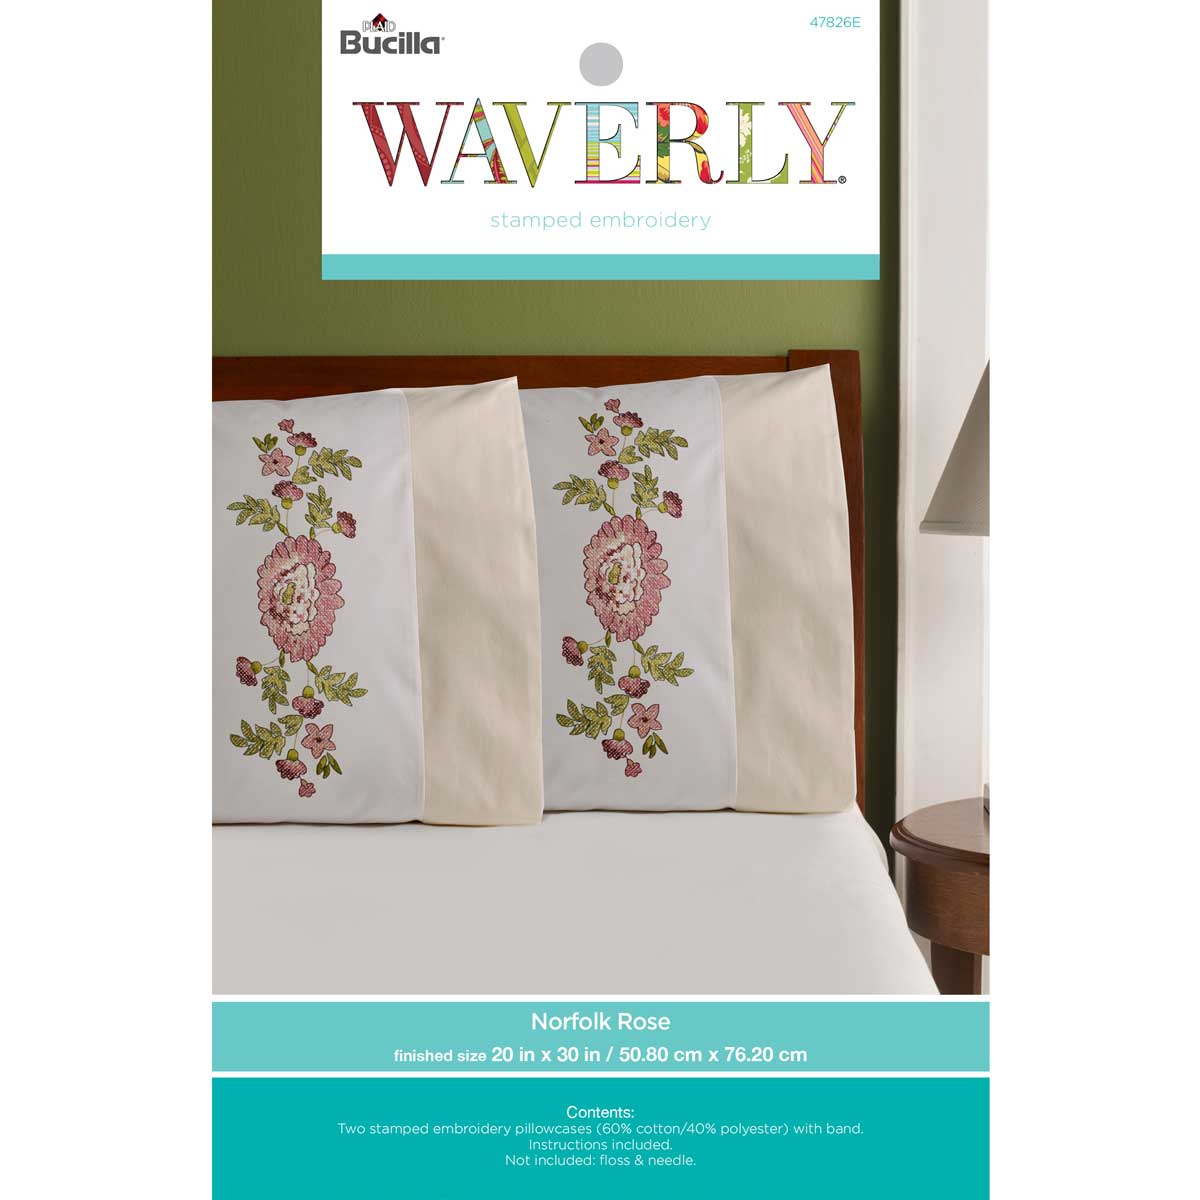 Bucilla ® Waverly ® Norfolk Rose Antique Collection Stamped Pillowcase Pair